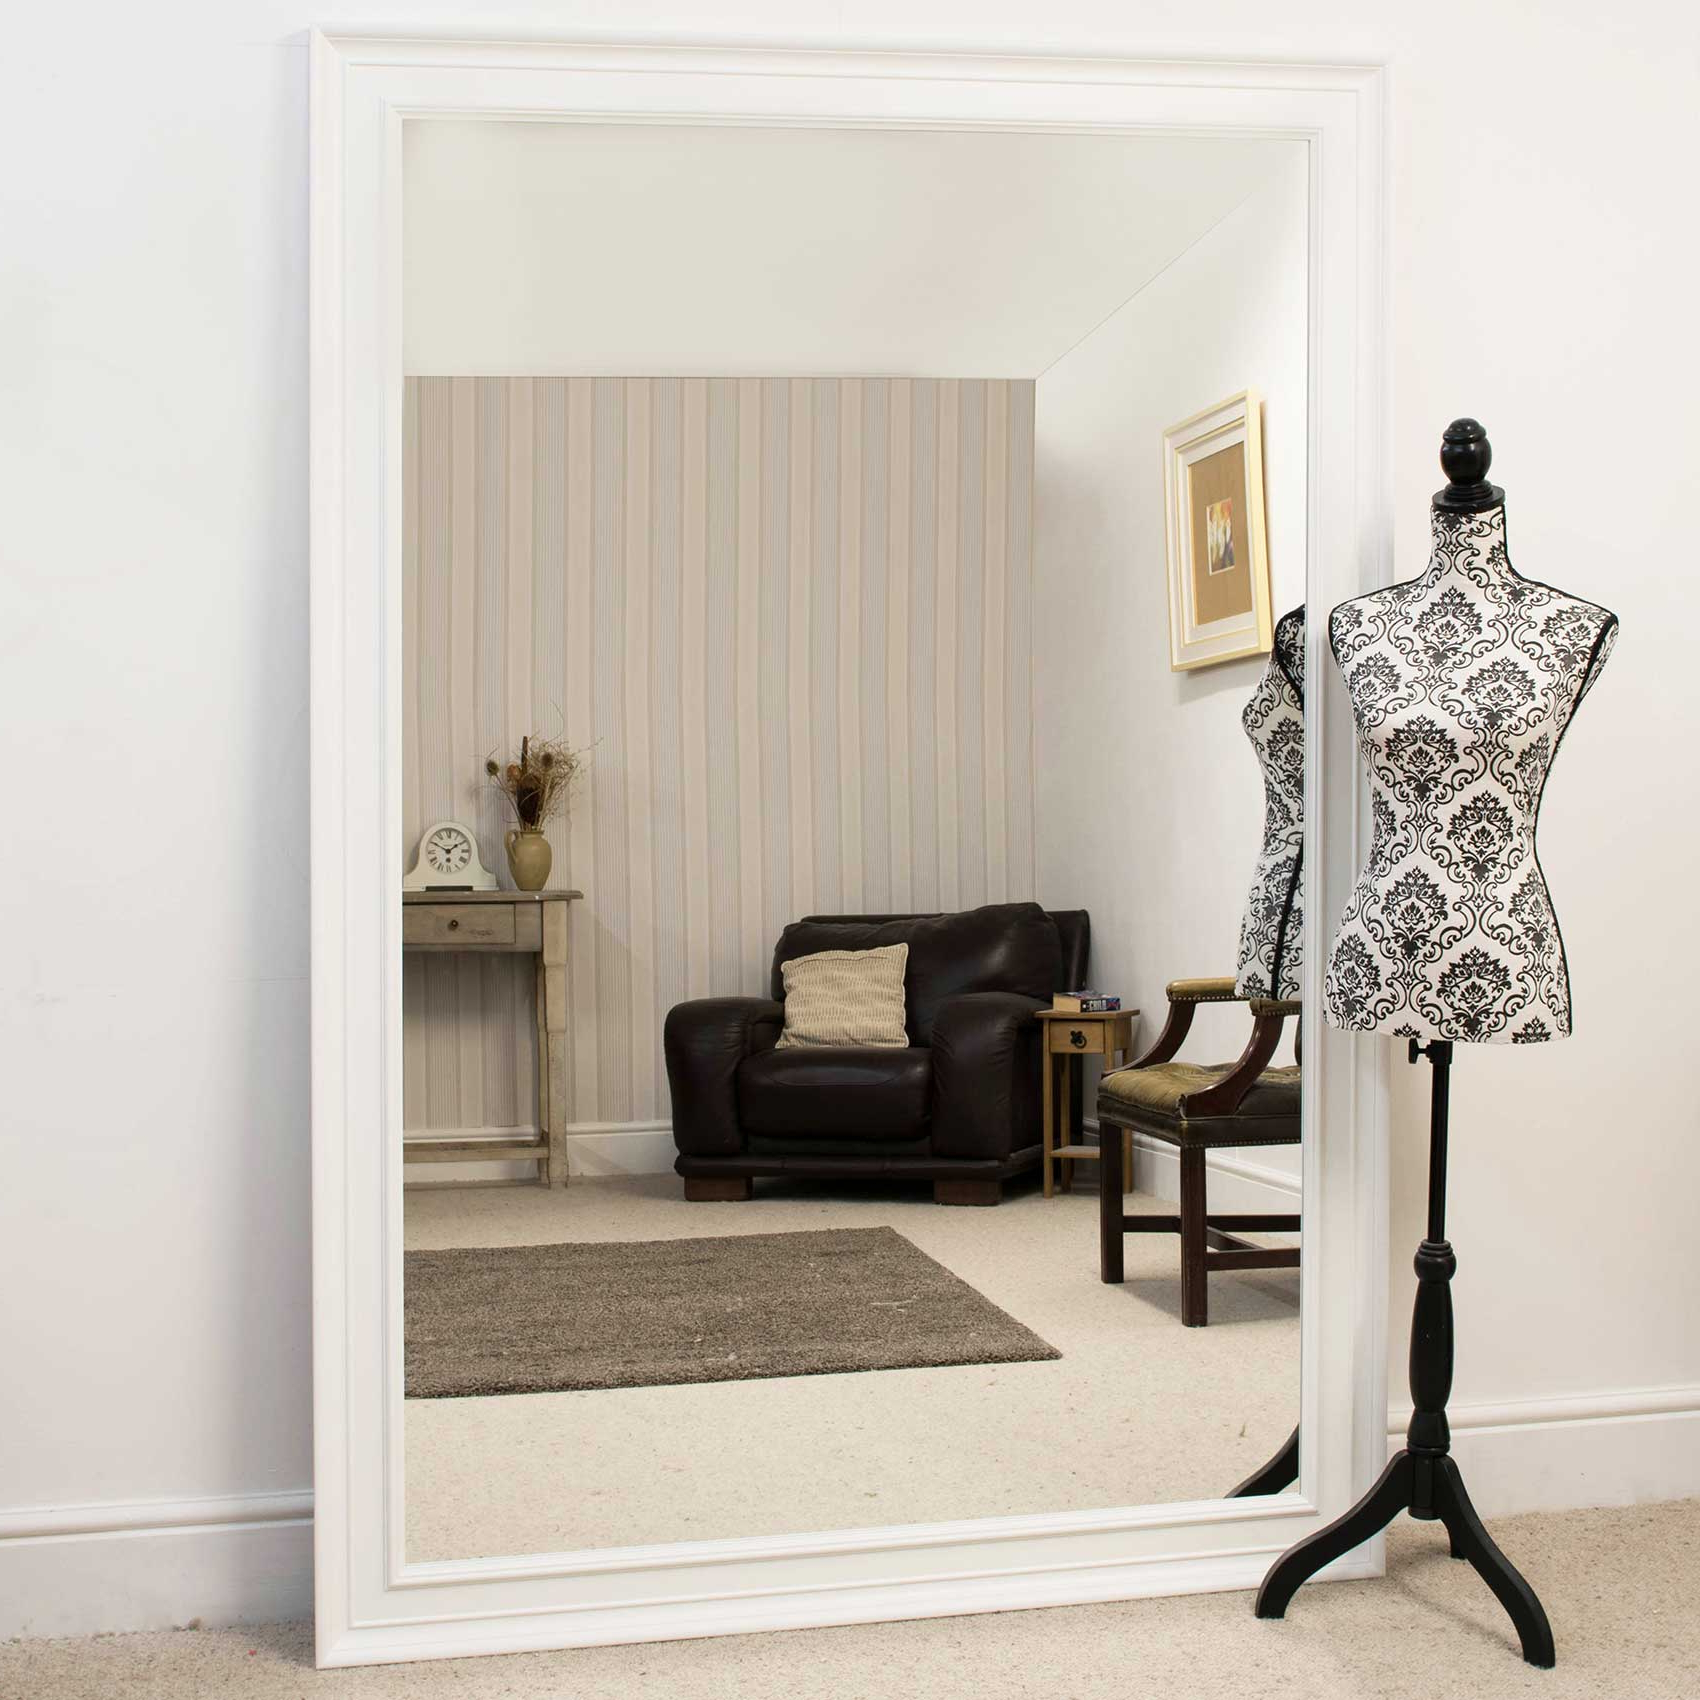 Most Popular Details About Large Wall Mirror Extra White Contemporary Leaner 6ft 9 X 4ft  9 206cm X 145cm Pertaining To Big Wall Mirrors (View 13 of 20)